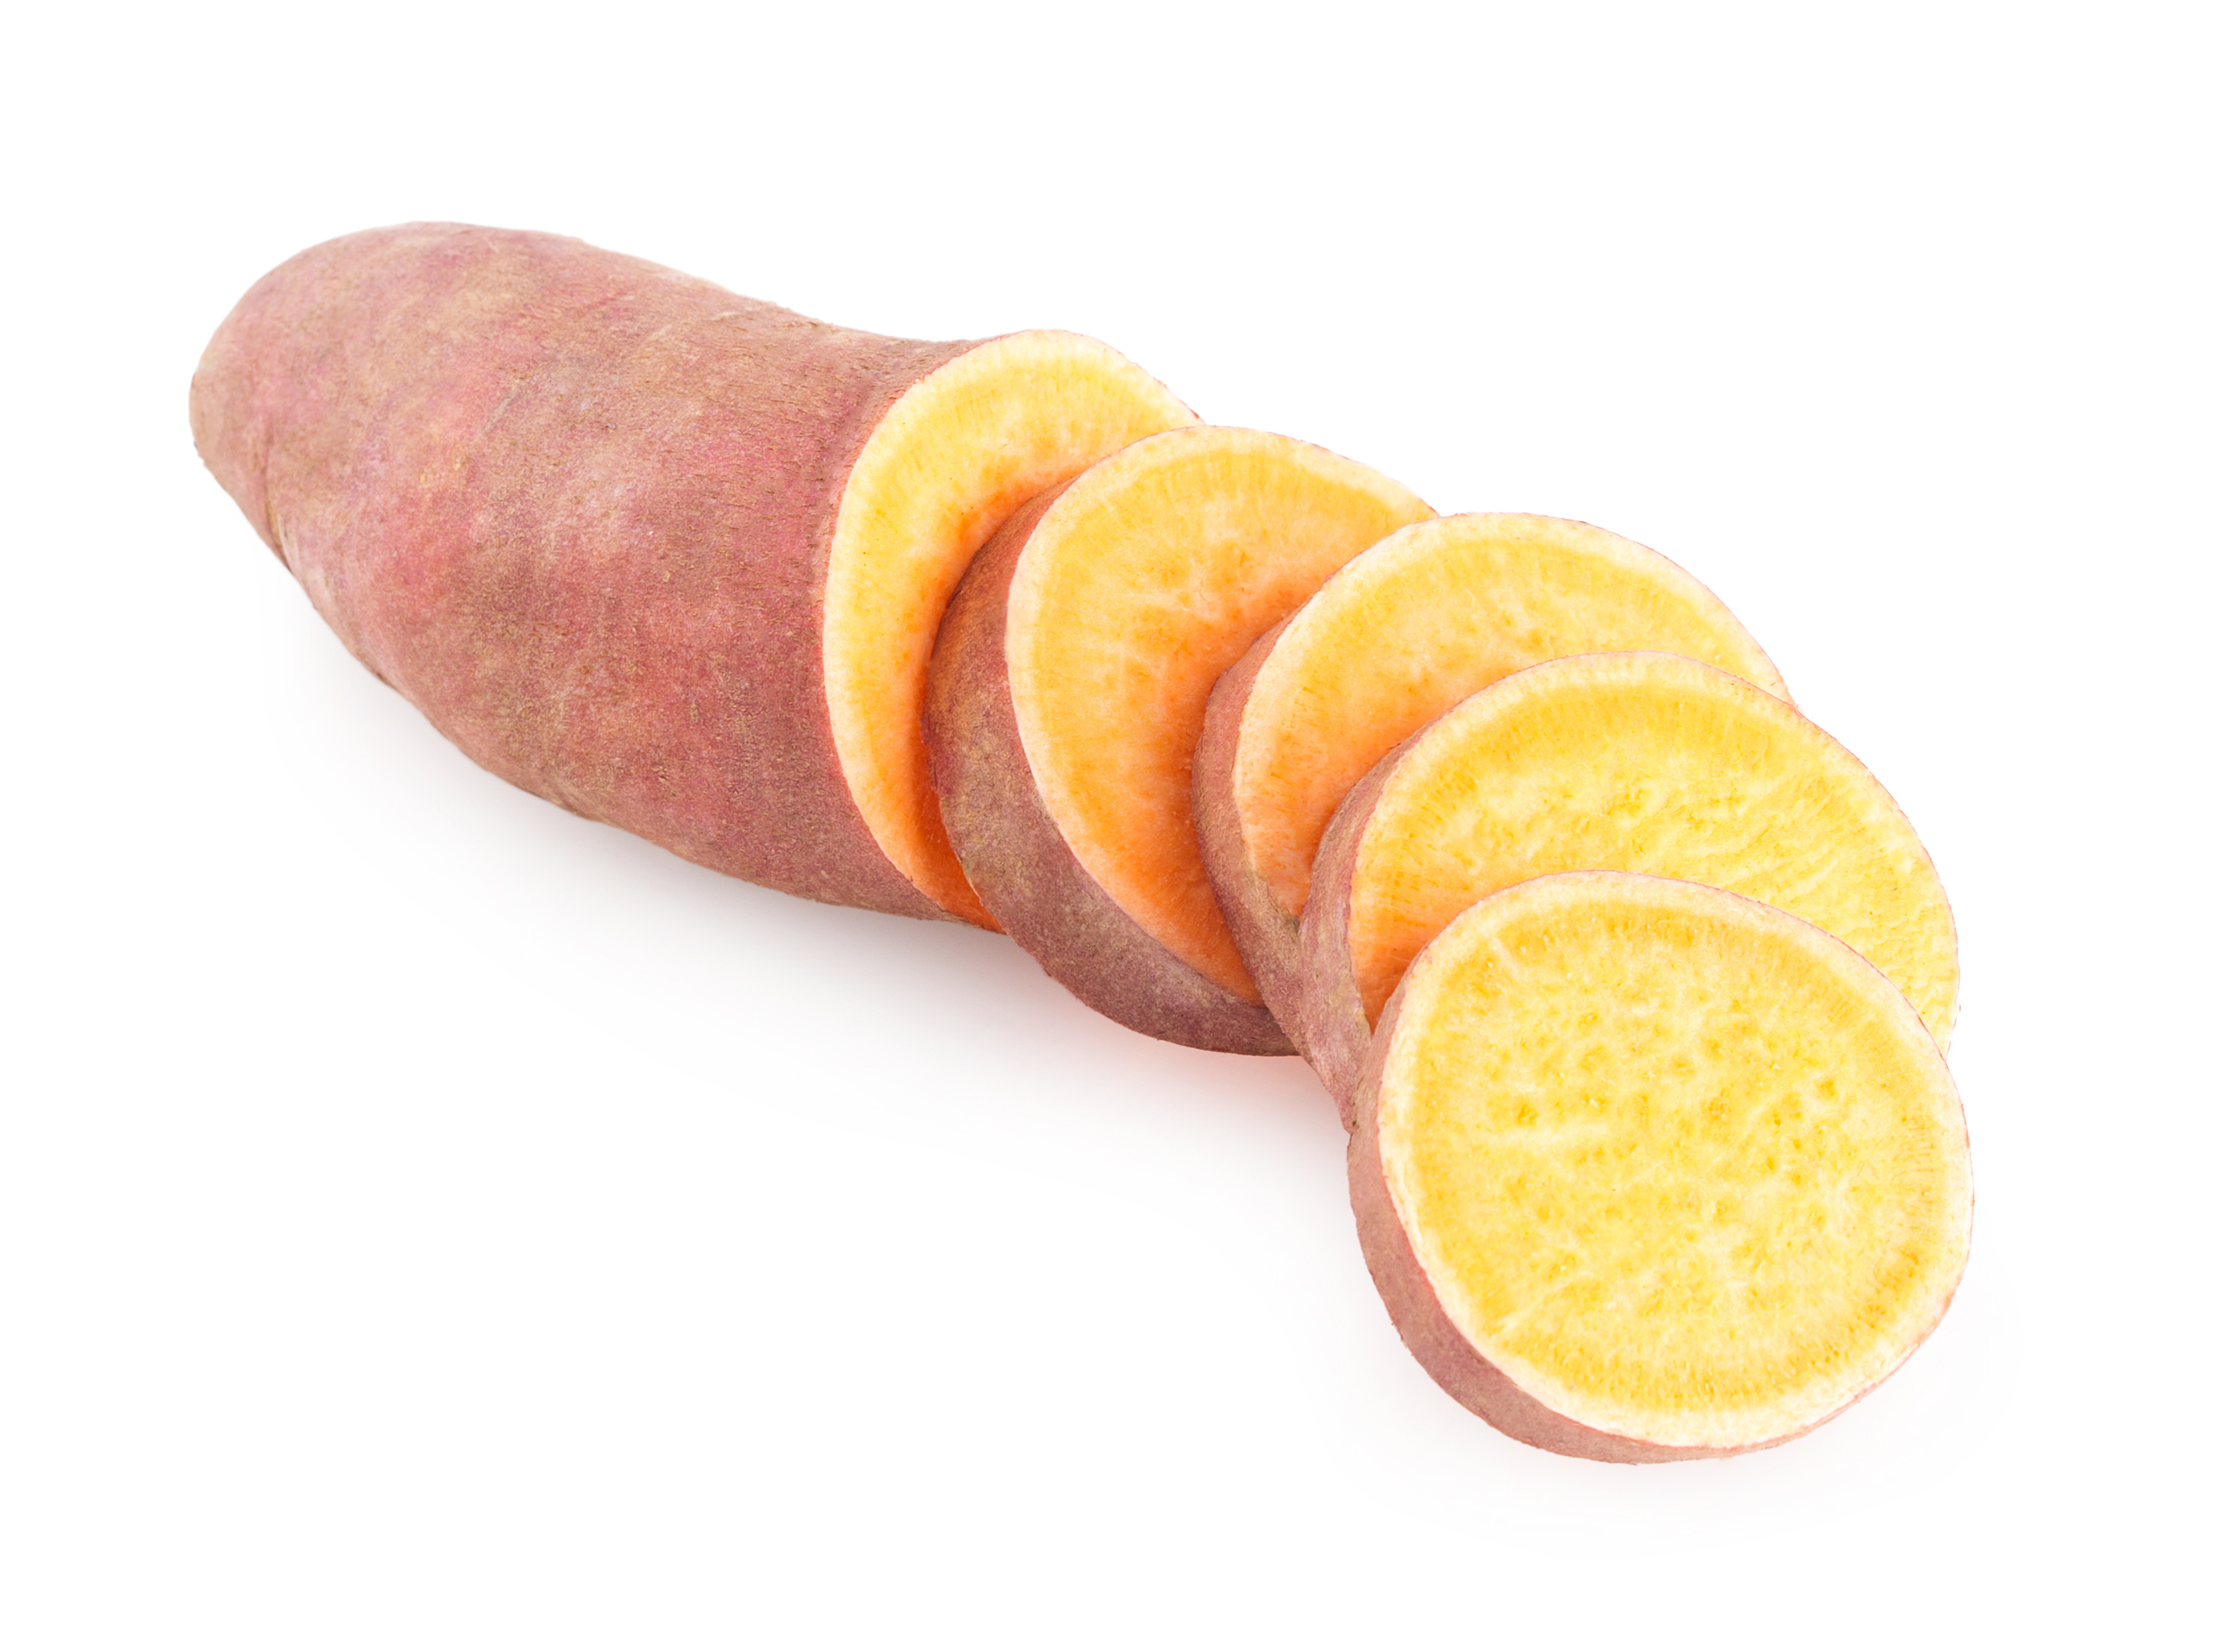 Sweet potato sliced, Single, Snack, Starch, Root, HQ Photo